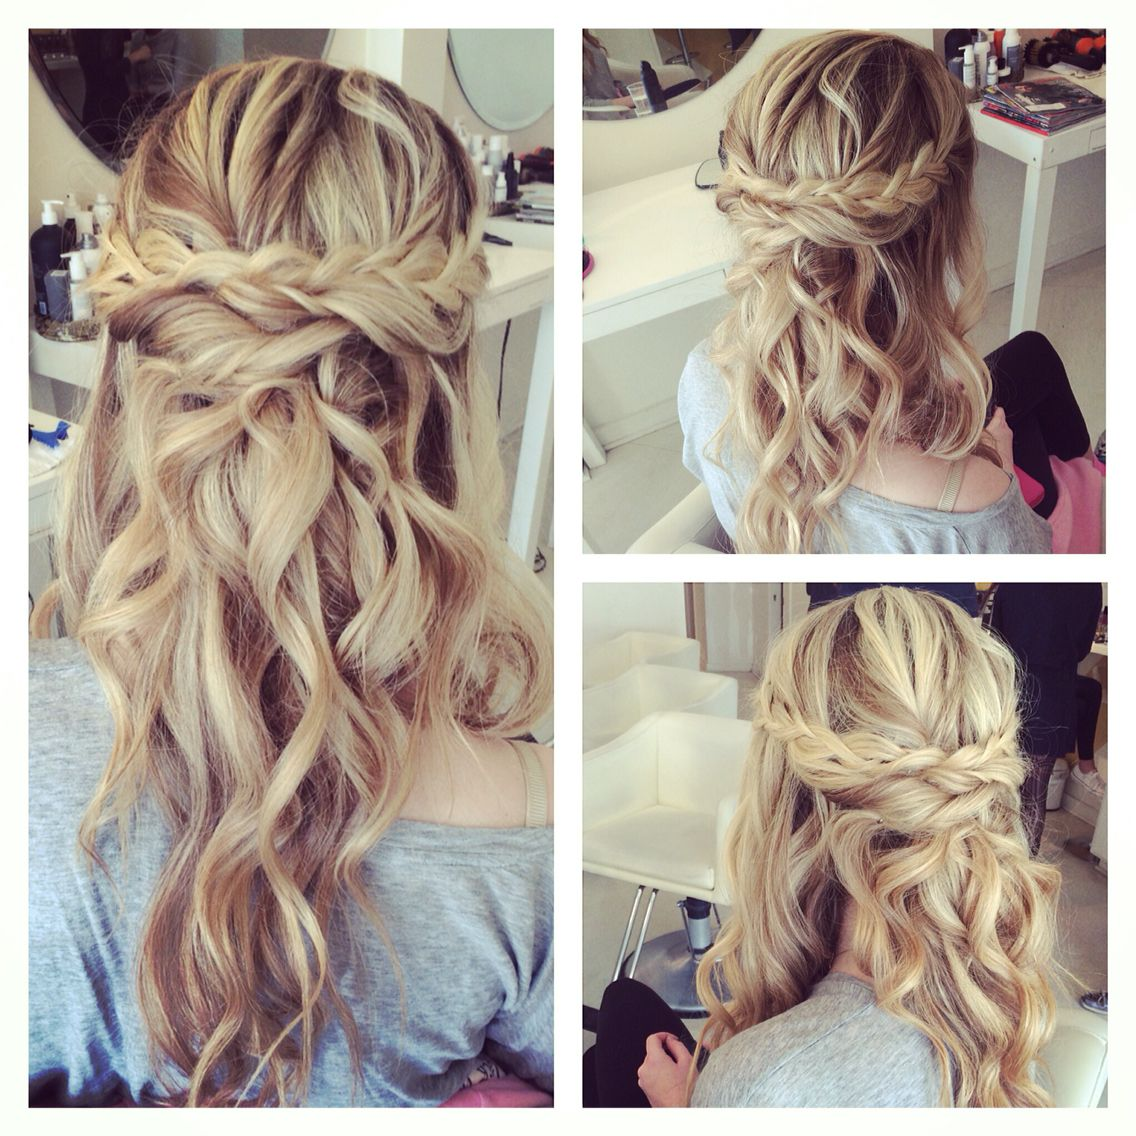 Beachy half up half down with braids the cutest formal inspo